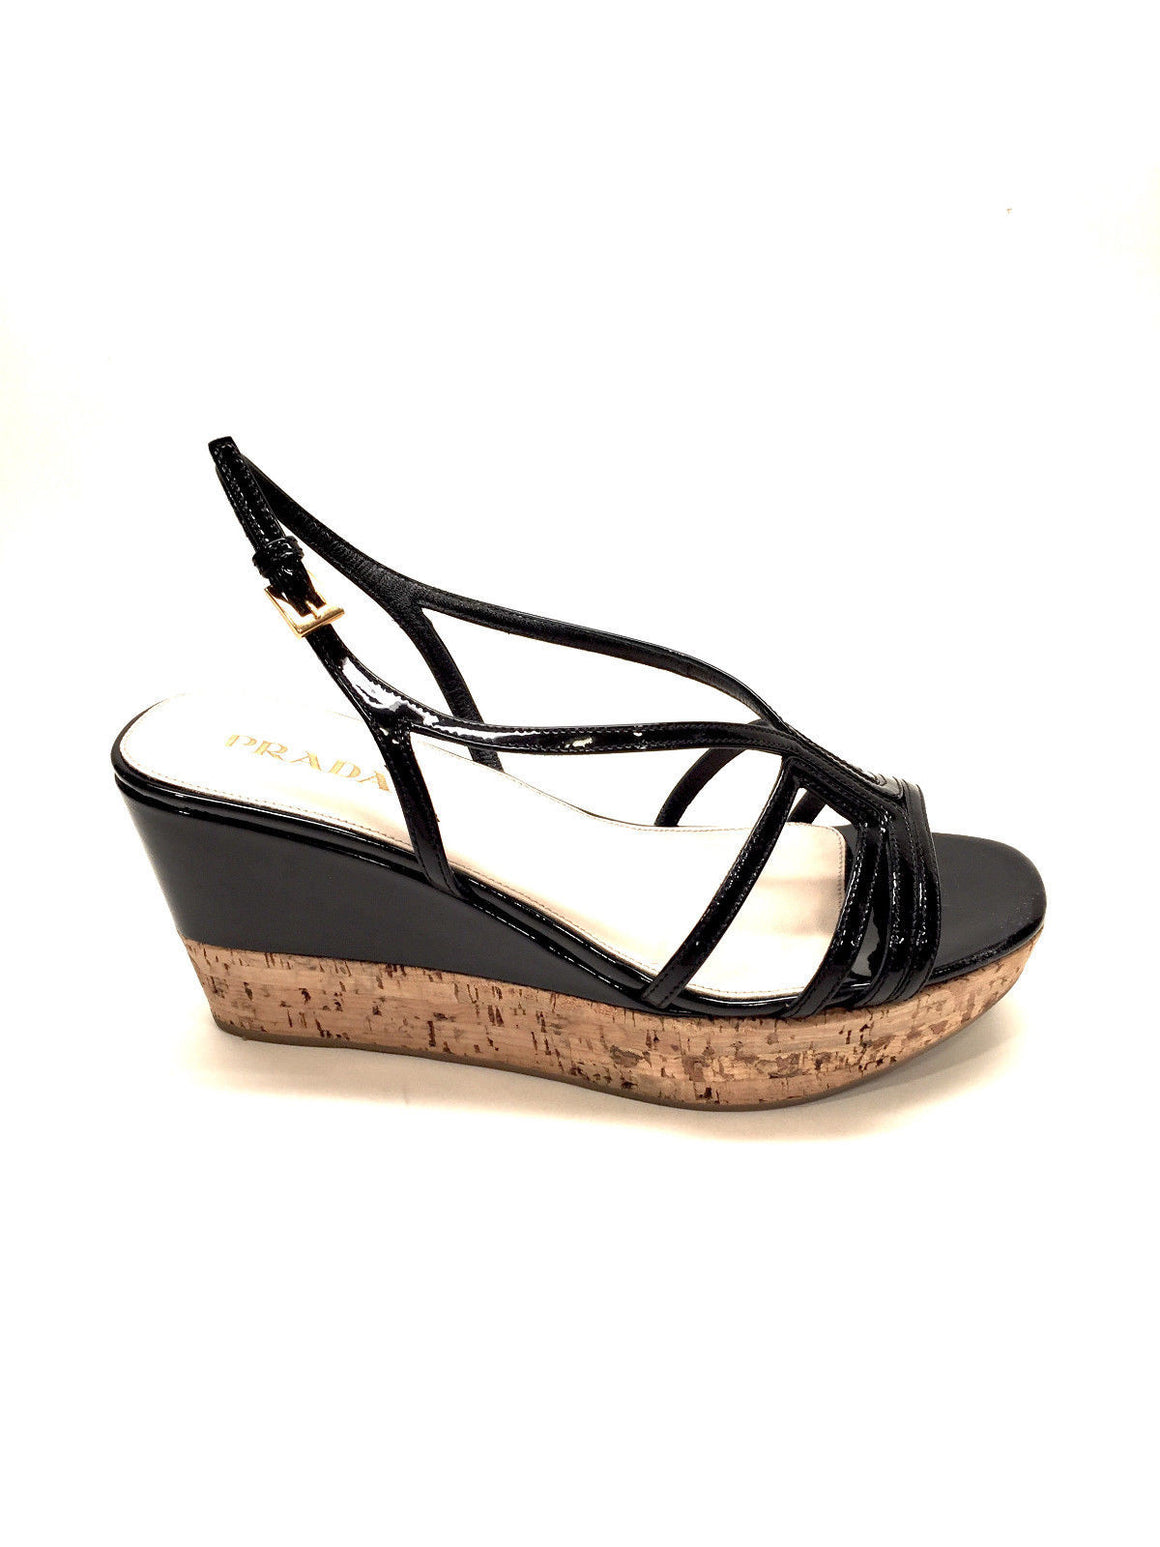 bisbiz.com PRADA  Black Patent Leather Cork Platform Wedge-Heel Strappy Sandals Mules  Size: 37.5 / 7.5 - Bis Luxury Resale